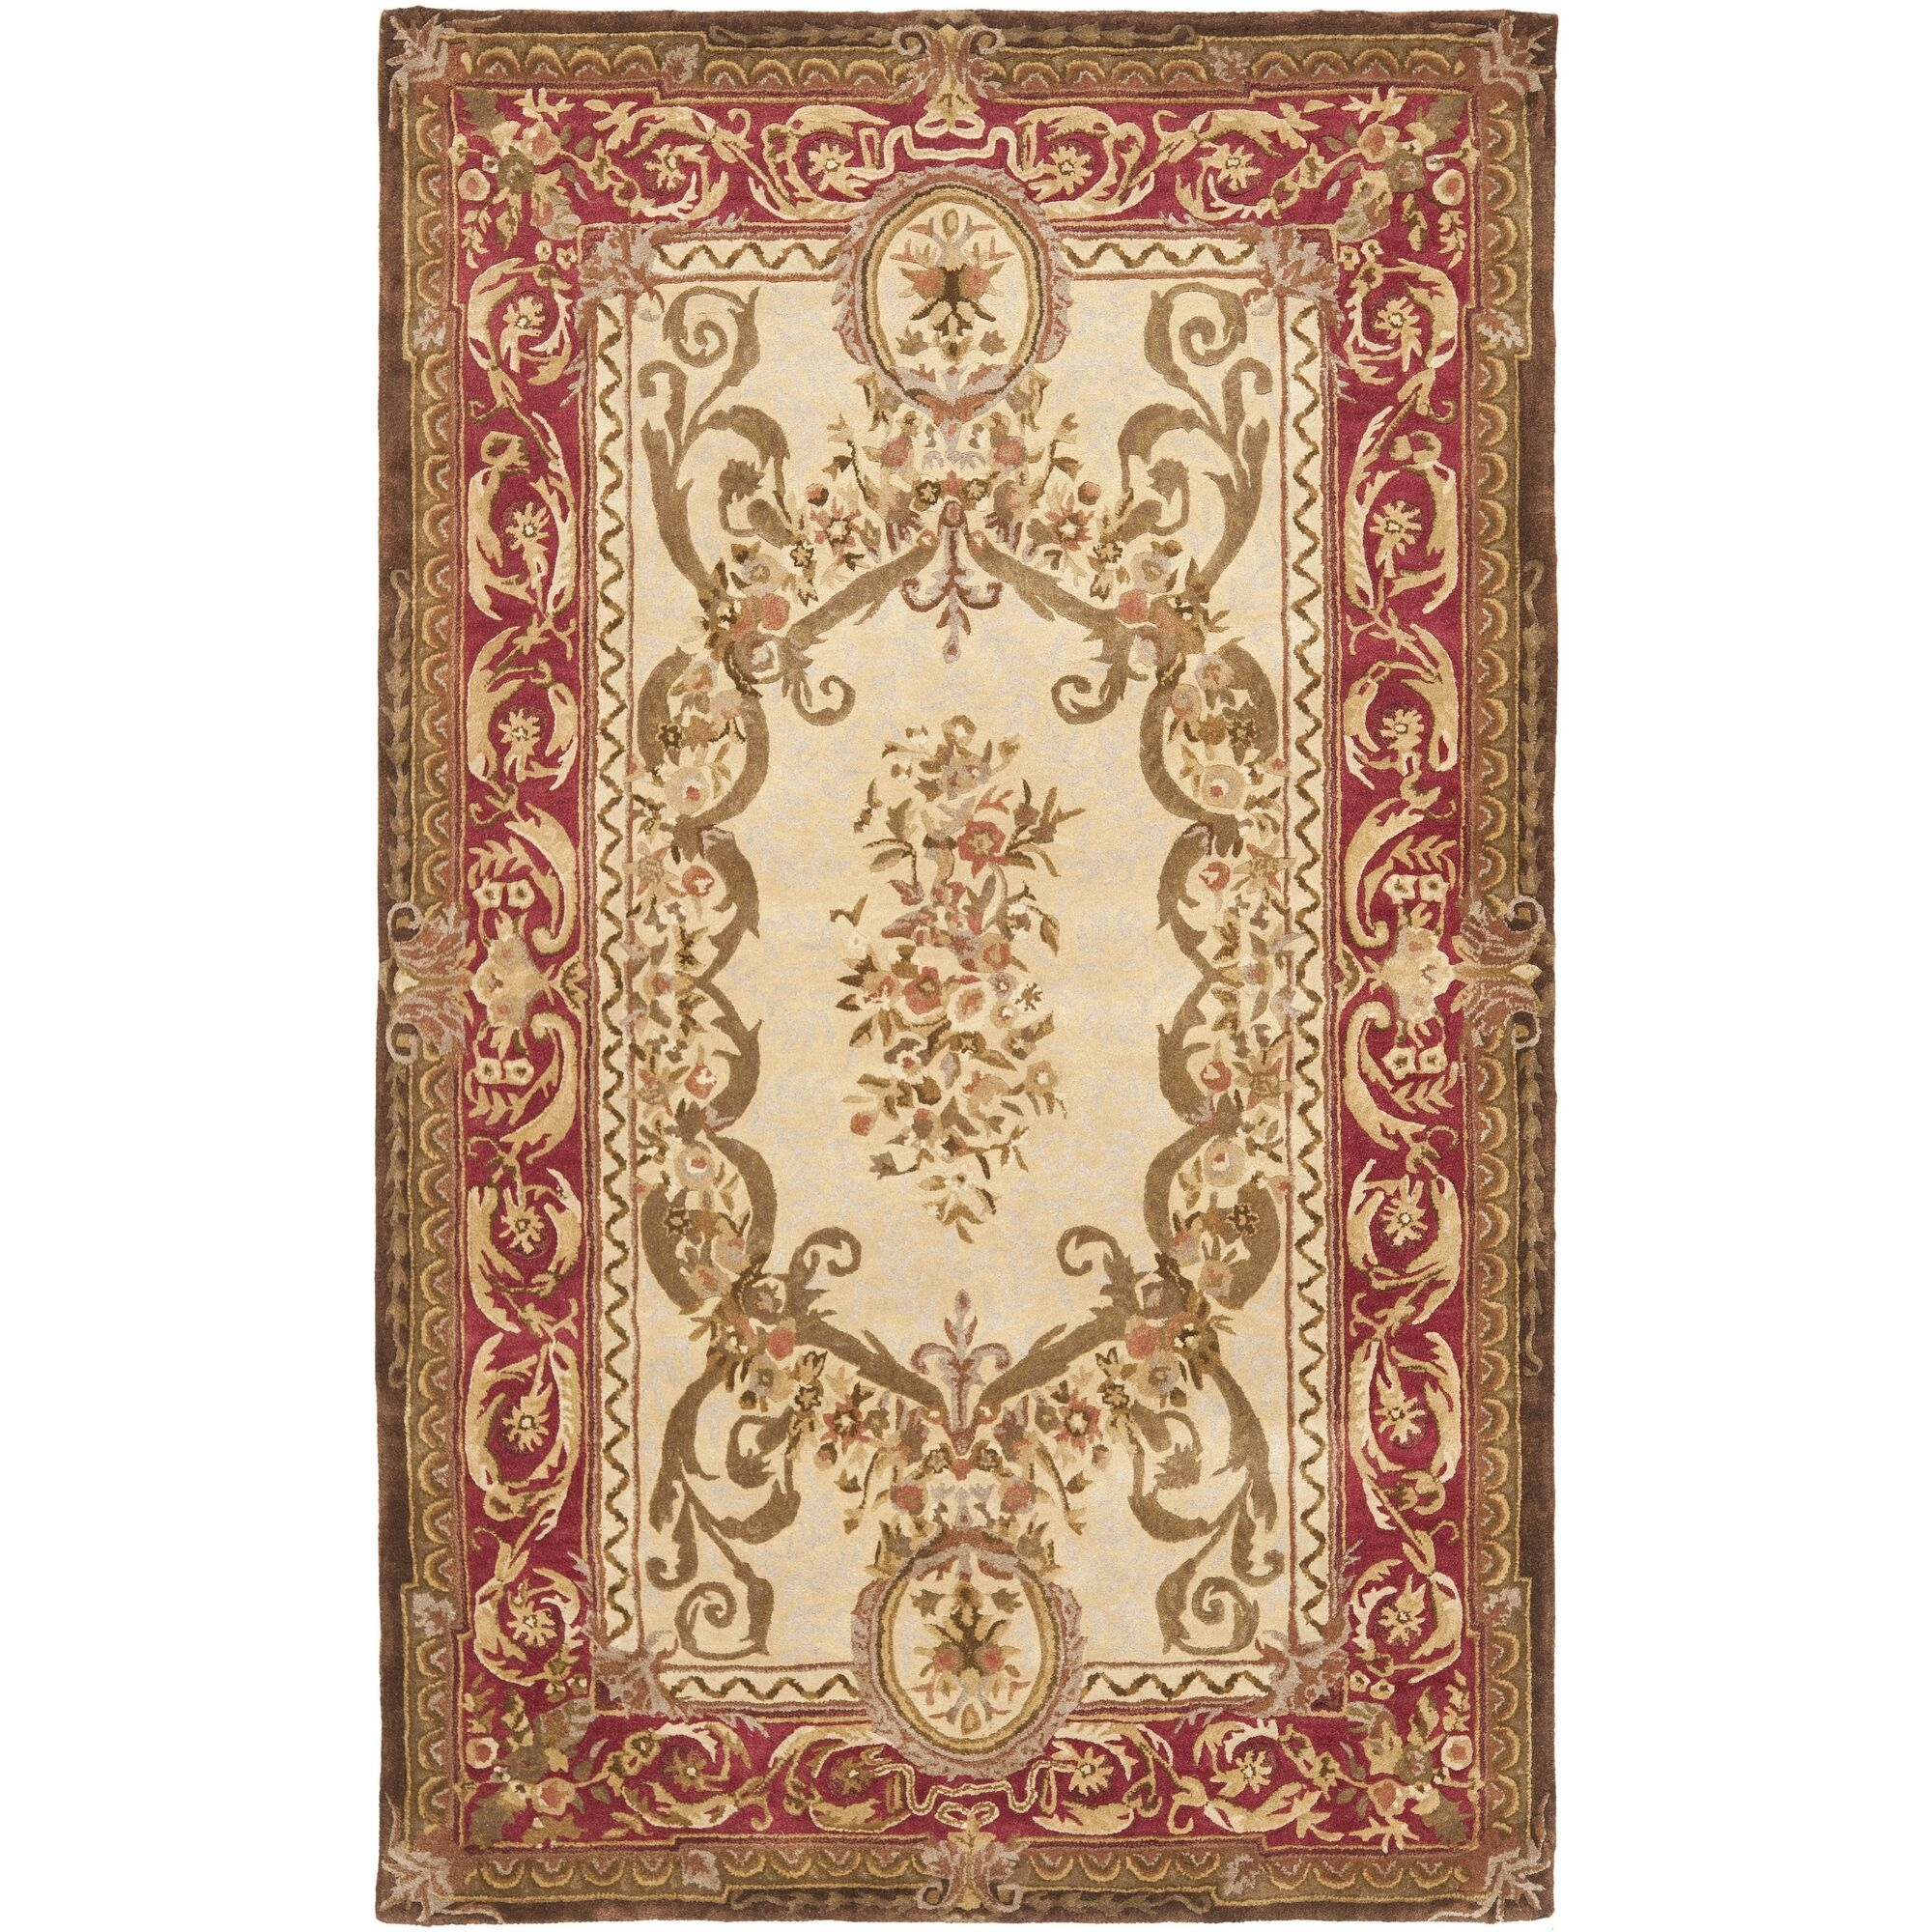 Loren Gold/Red Area Rug Rug Size: Rectangle 4' x 6'